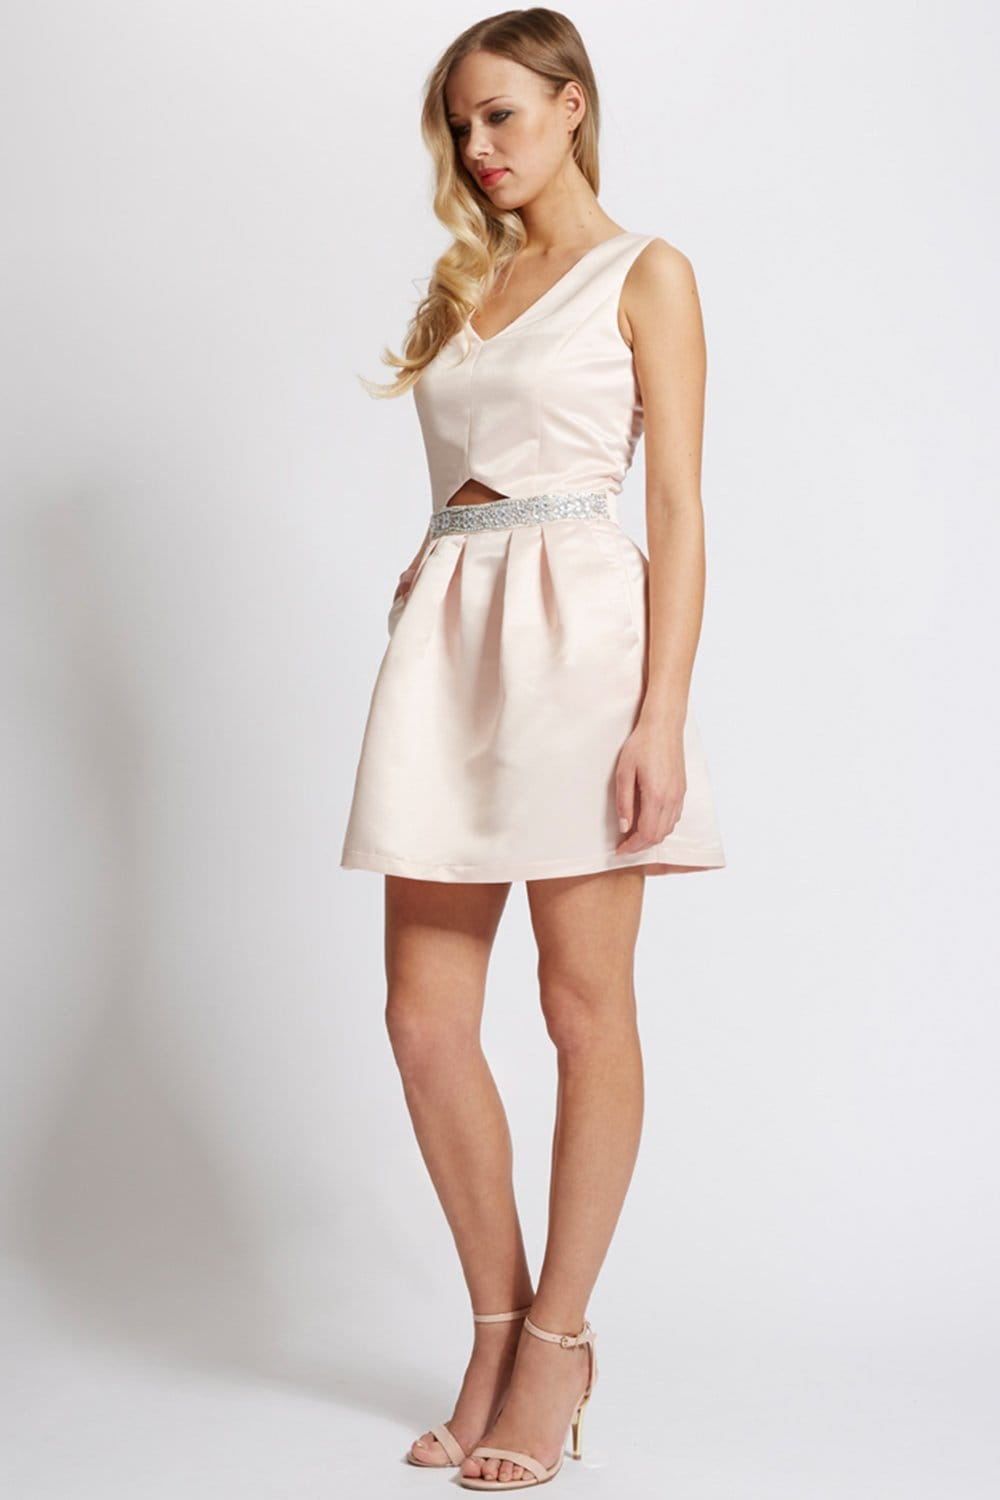 Nude Satin Cut Out Dress - from Little Mistress UK